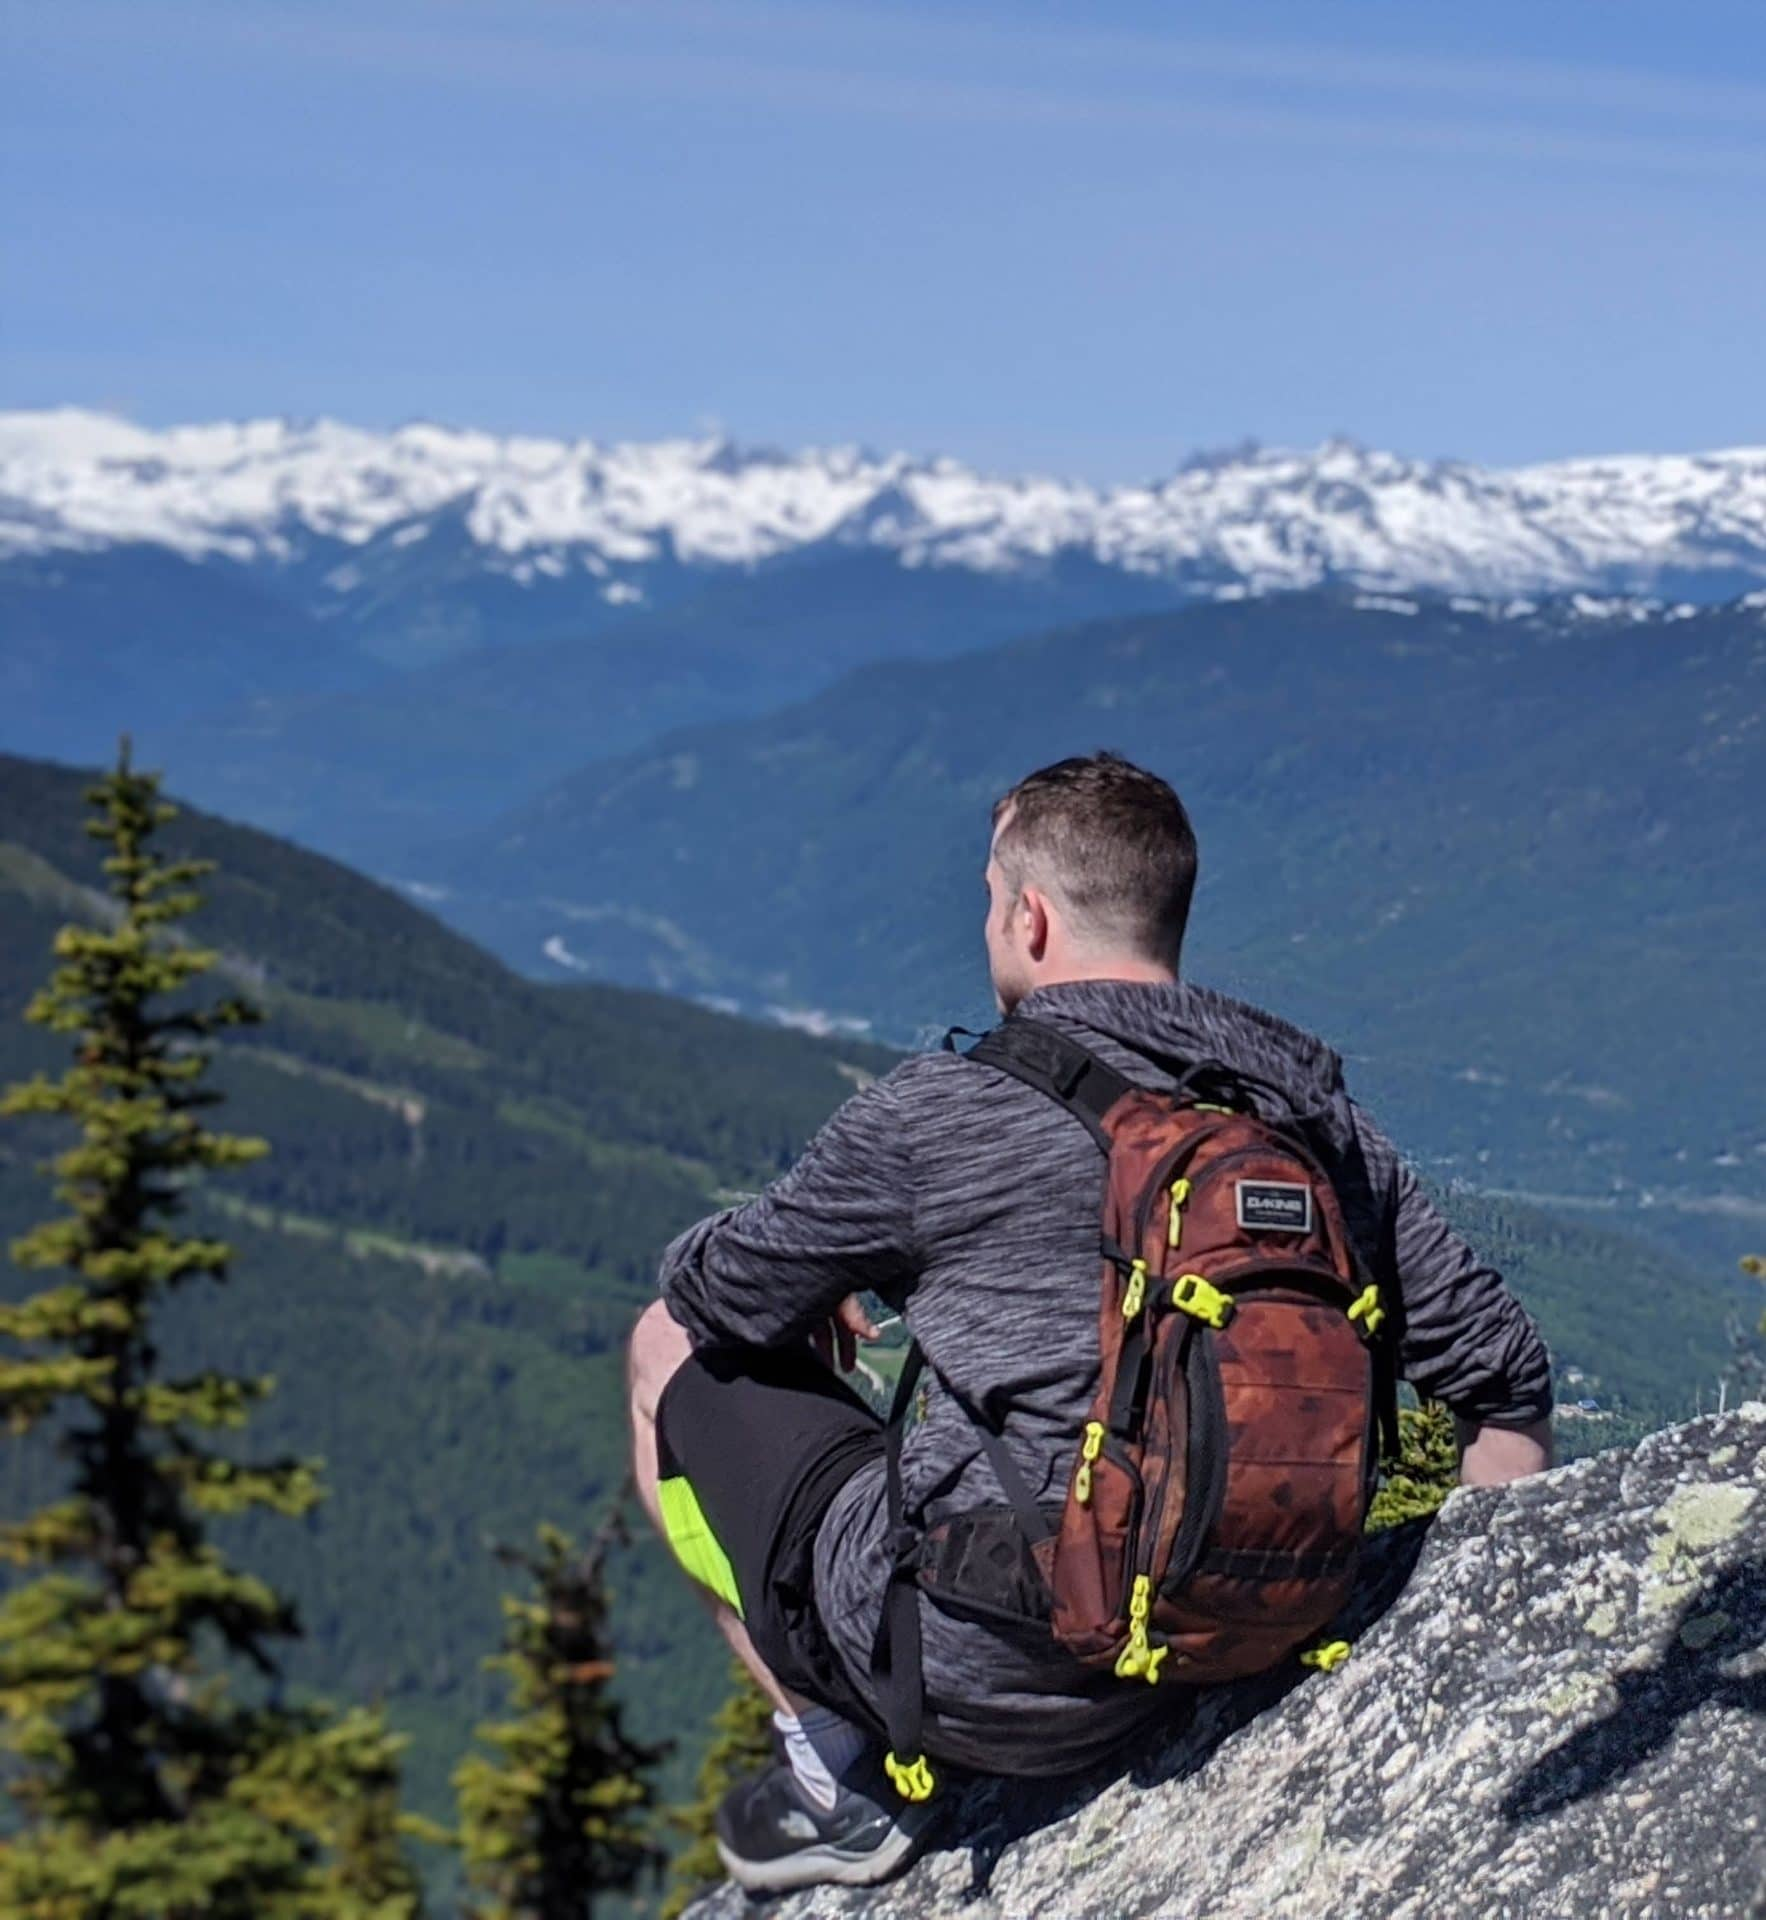 A photograph of a young man sitting on a mountain side. He has his back to the camera and is looking out over a mountain valley with snowcapped peaks in the distance and blue skies.